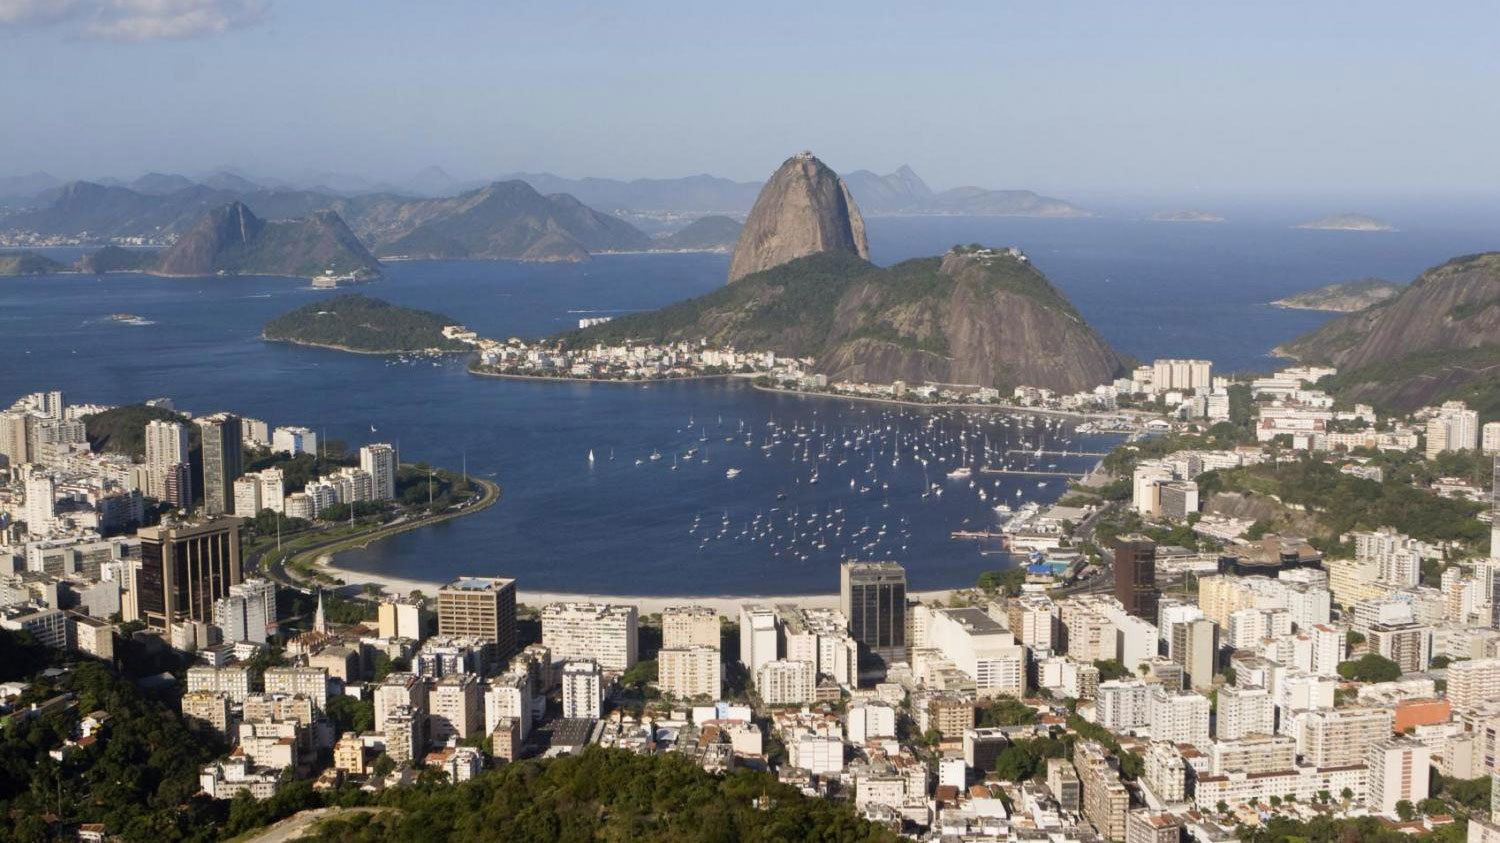 Panoramic view of Guanabara Bay and Sugarloaf Mountain in Rio de Janeiro